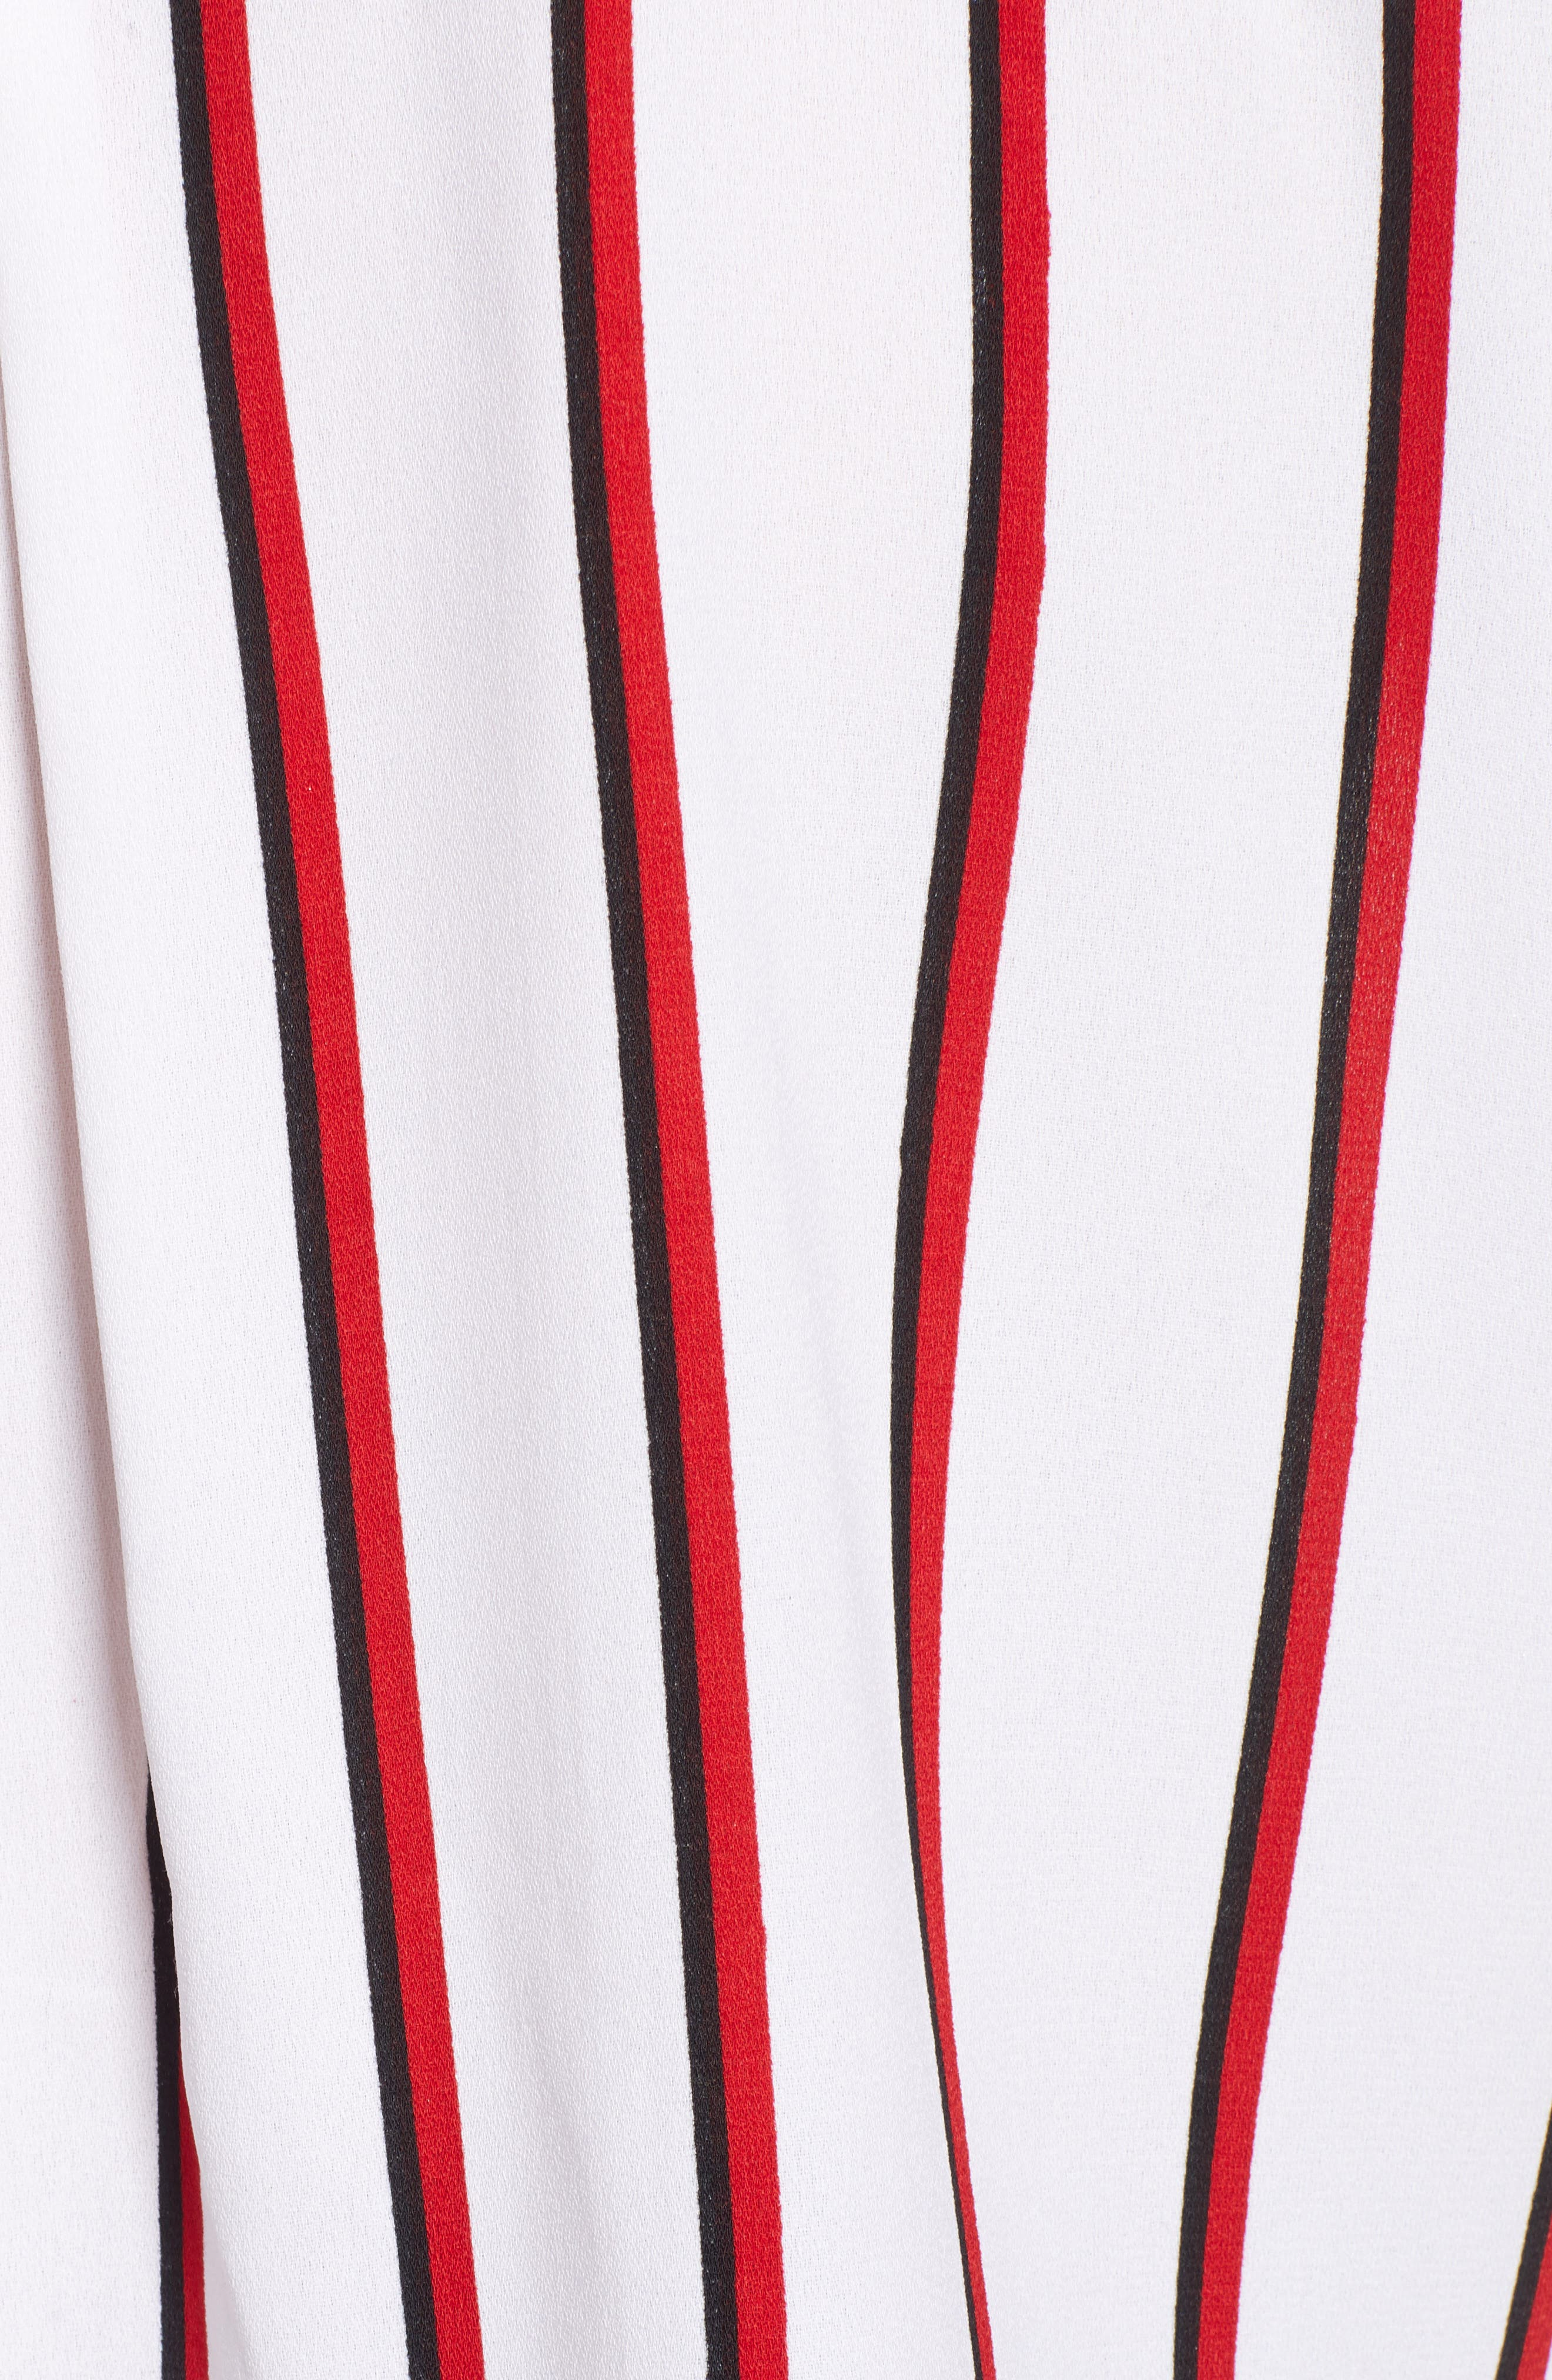 Counting Moons Stripe Top,                             Alternate thumbnail 5, color,                             Chili Red